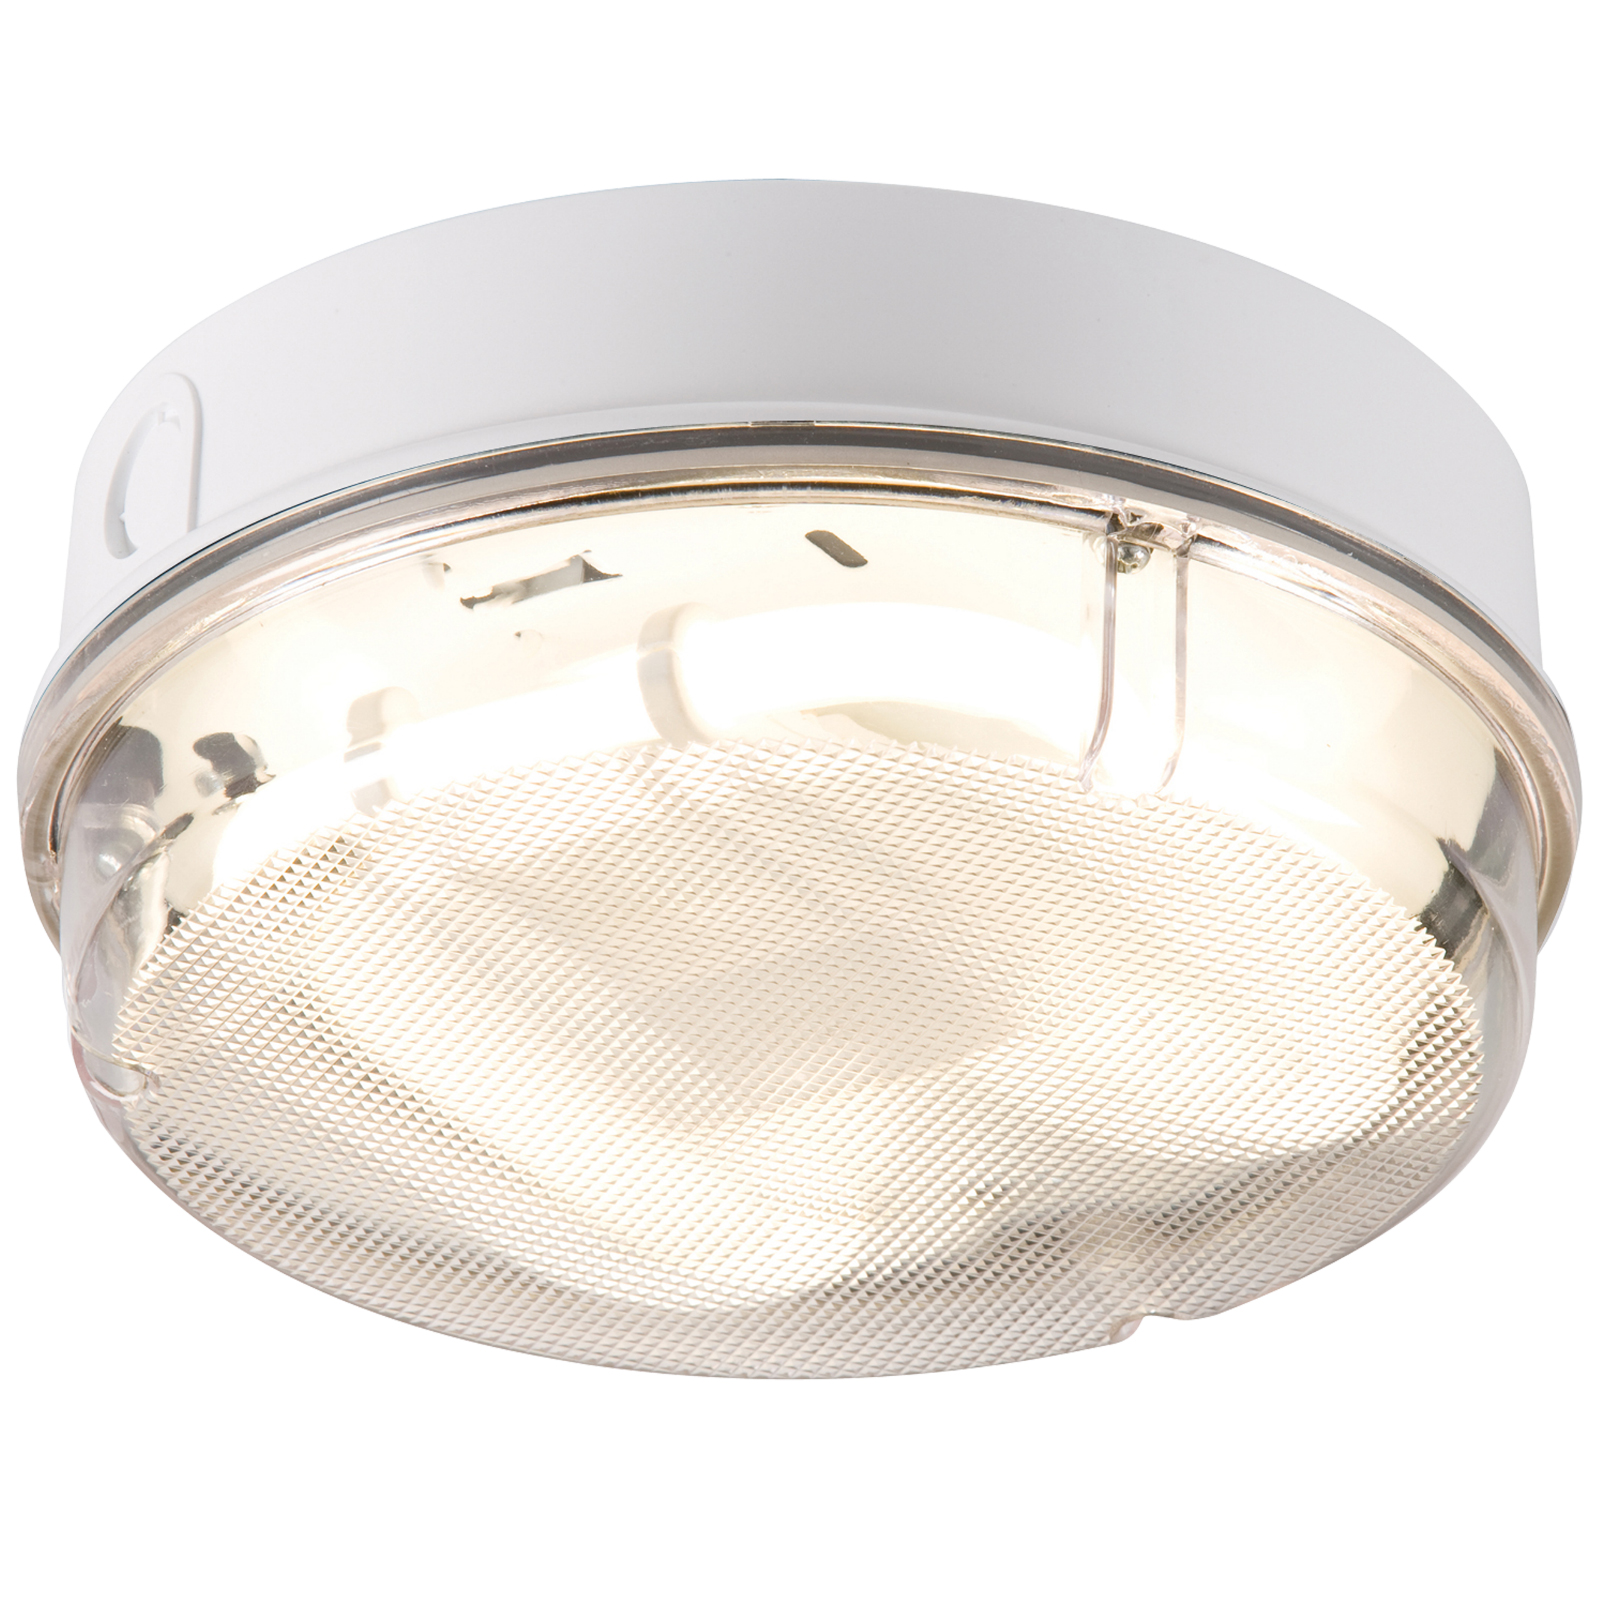 Greenbrook 2DR16WP Circular Bulkhead Light Fitting 2D White //Prismatic 16 Watt